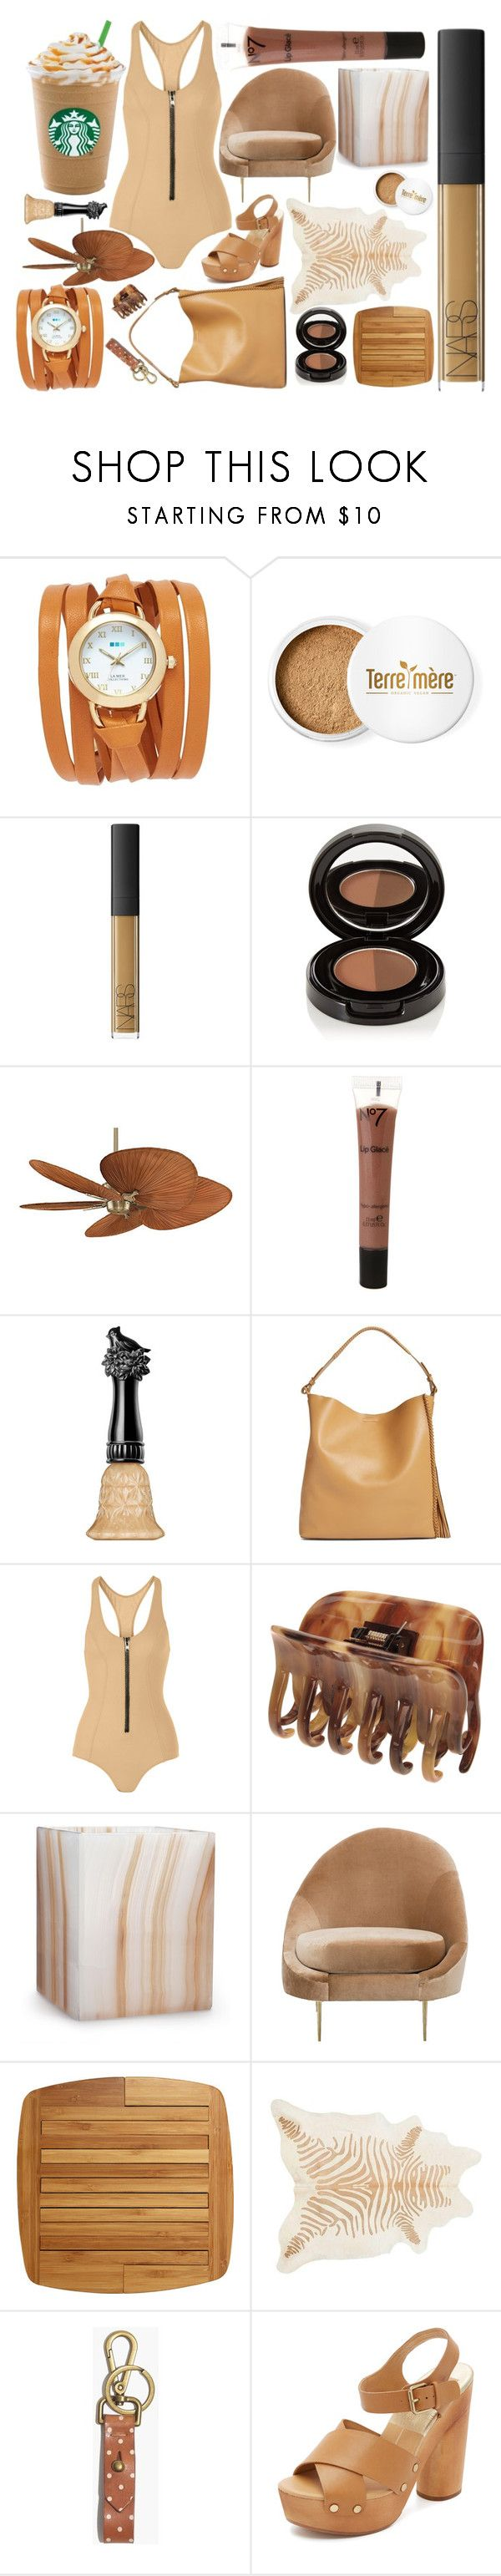 """""""7,000 Followers: Caramel Frappuccino"""" by rachael-aislynn ❤ liked on Polyvore featuring La Mer, Terre Mère, NARS Cosmetics, Anastasia Beverly Hills, Fanimation, Anna Sui, AllSaints, Lisa Marie Fernandez, France Luxe and Labrazel"""